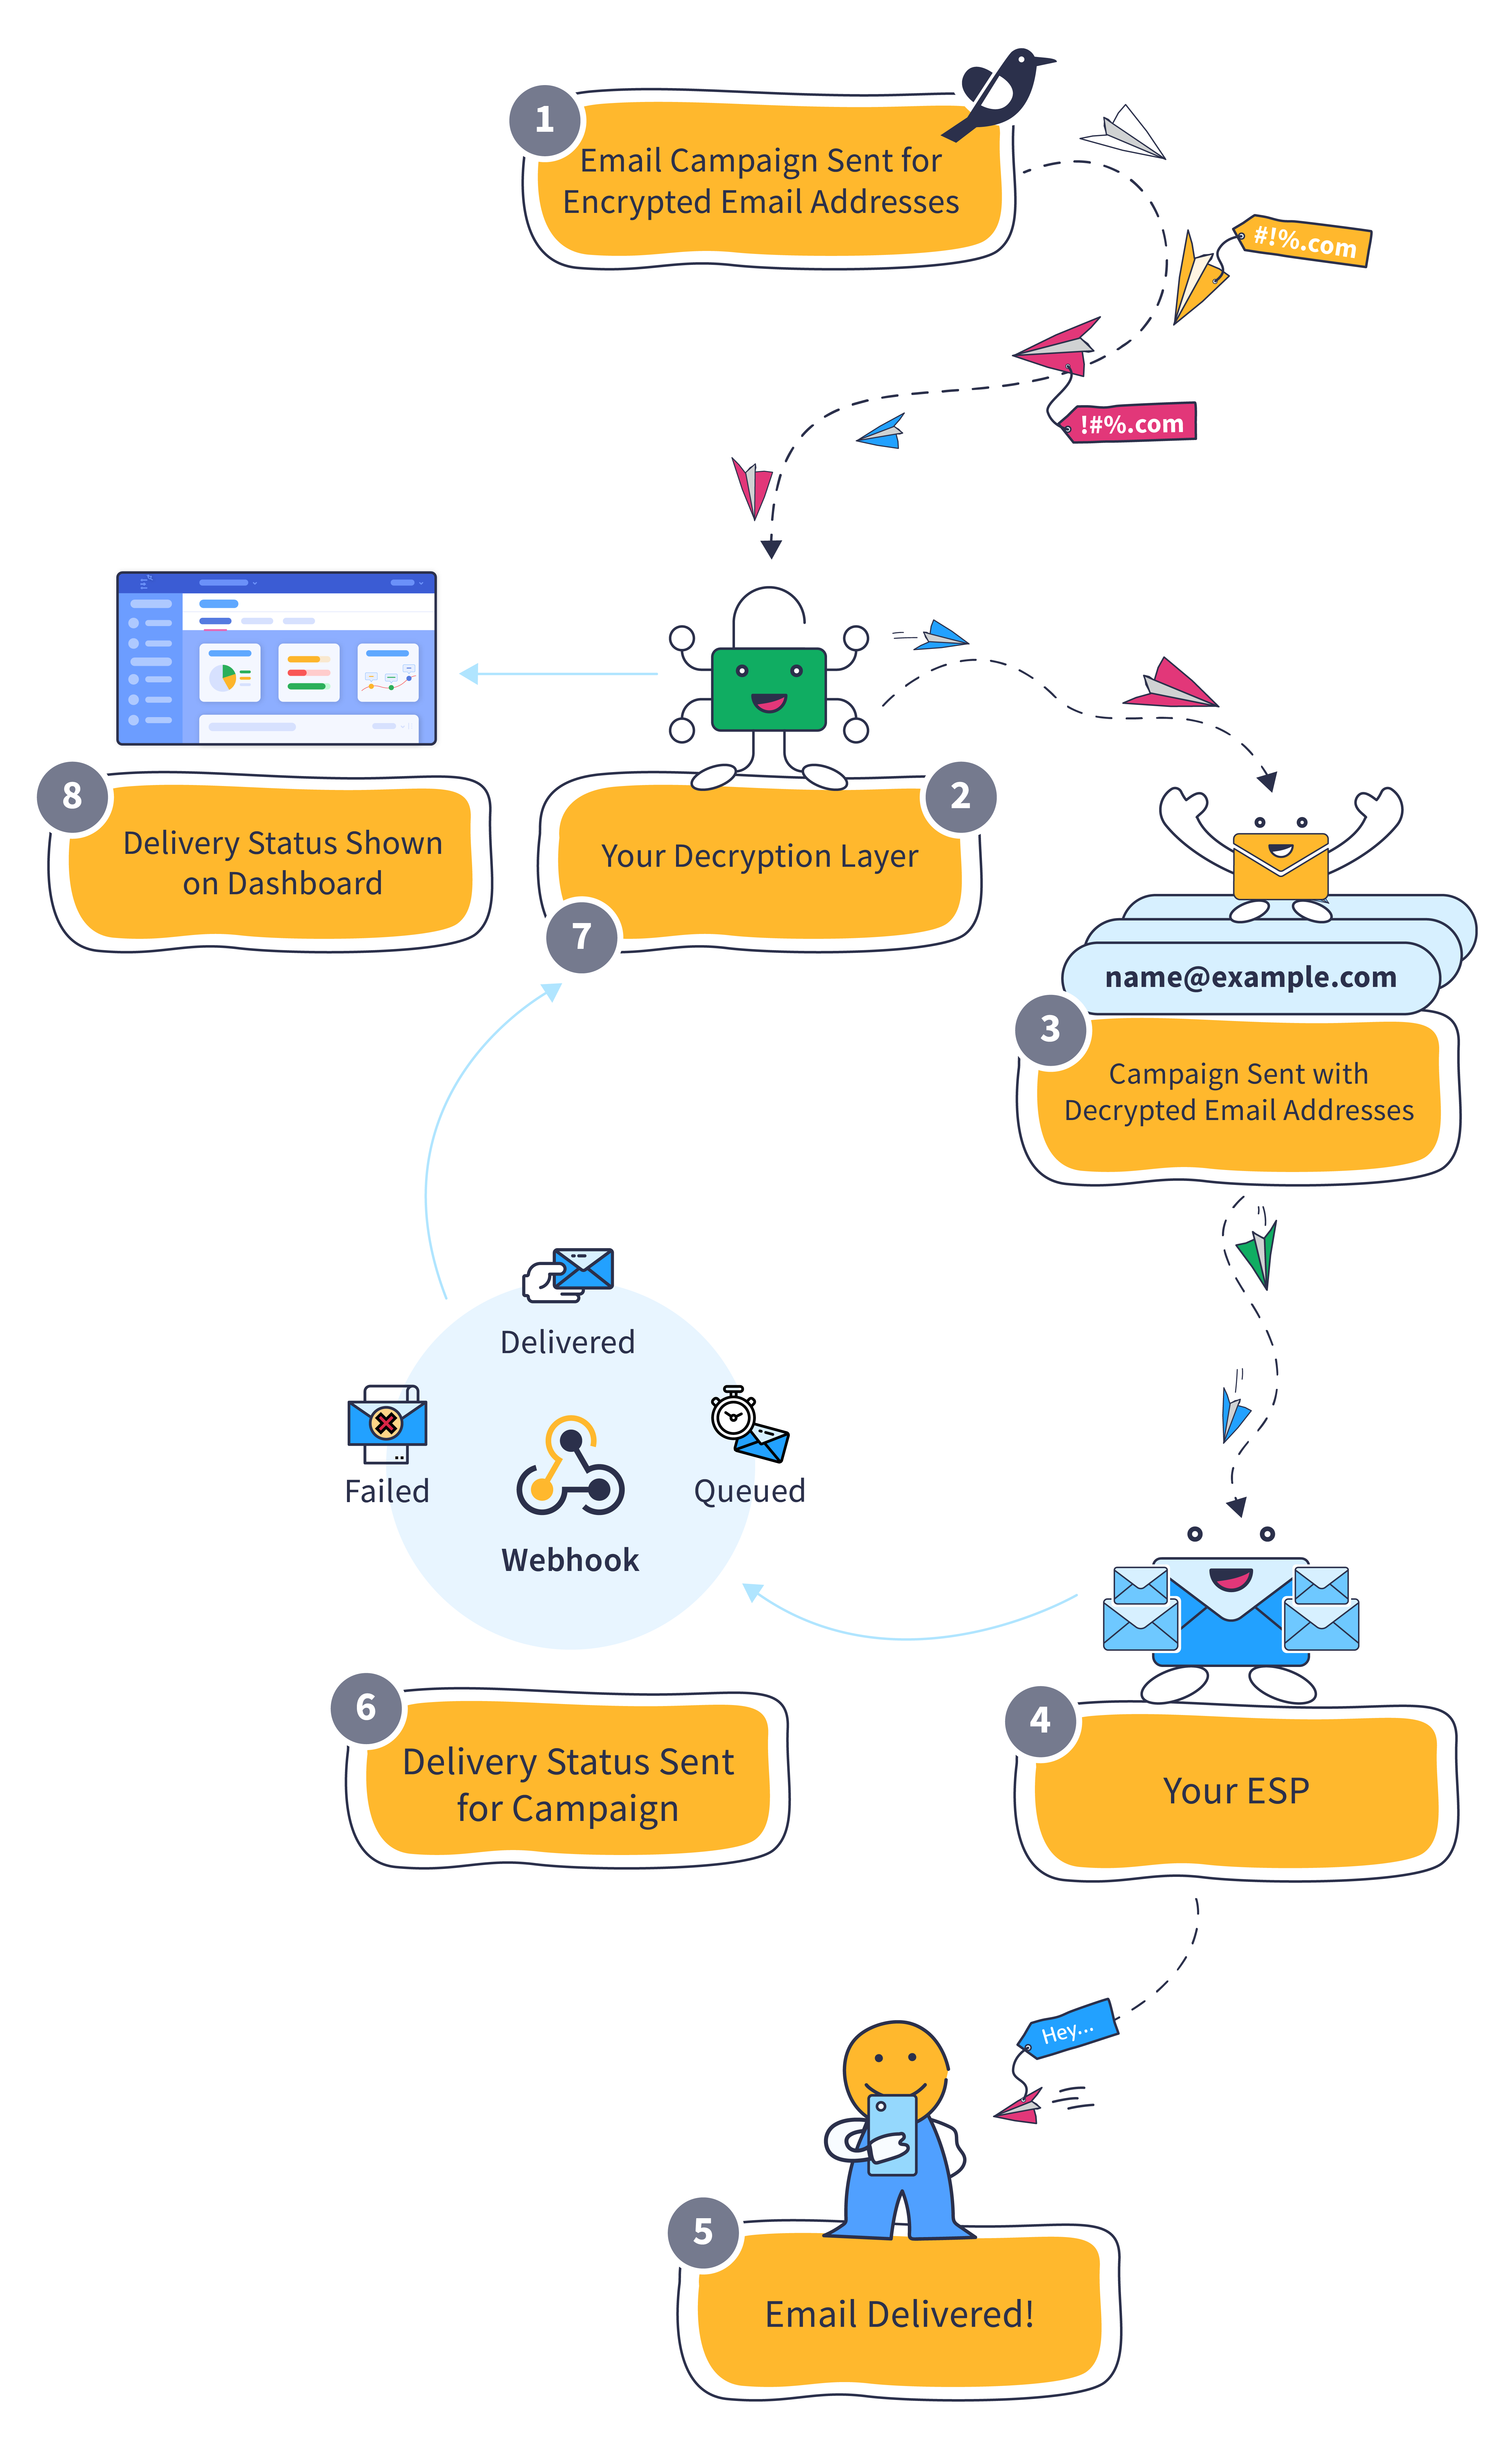 How Private ESP Setup enables you to send Email campaigns to encrypted email addresses